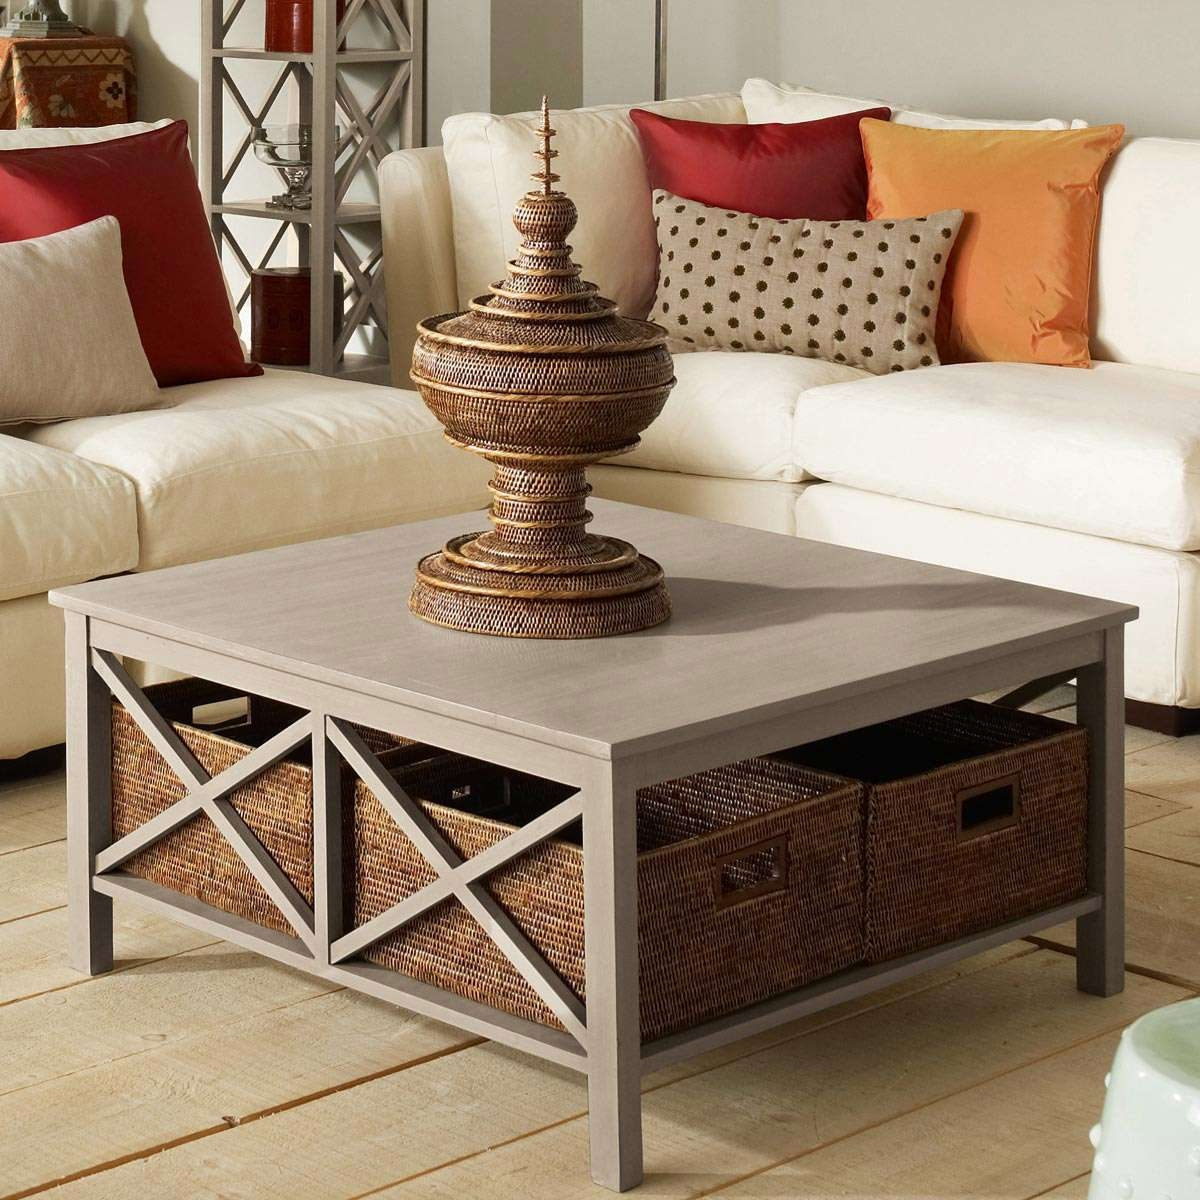 Preferred Huge Square Coffee Tables Pertaining To Large Coffee Tables With Storage Cocktail Tables For Sale (View 17 of 20)